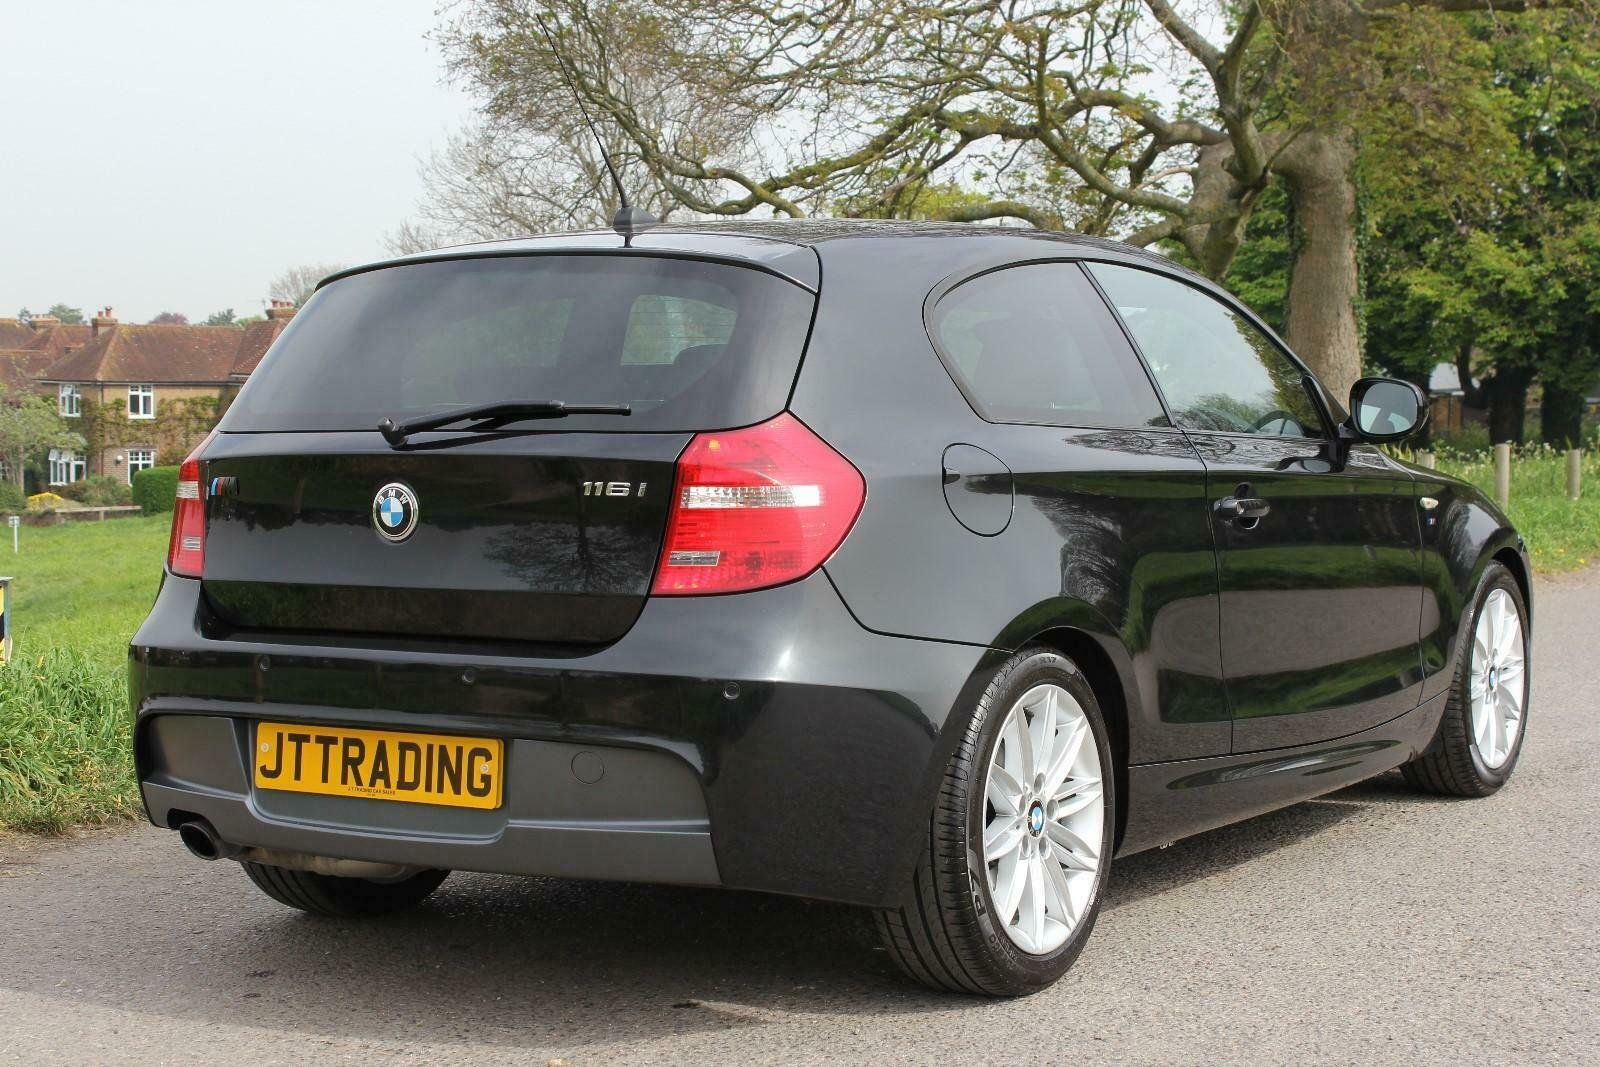 2010 BMW 1 Series 2.0 116i M Sport Hatchback 3 door Coupe  For Sale (picture 3 of 6)